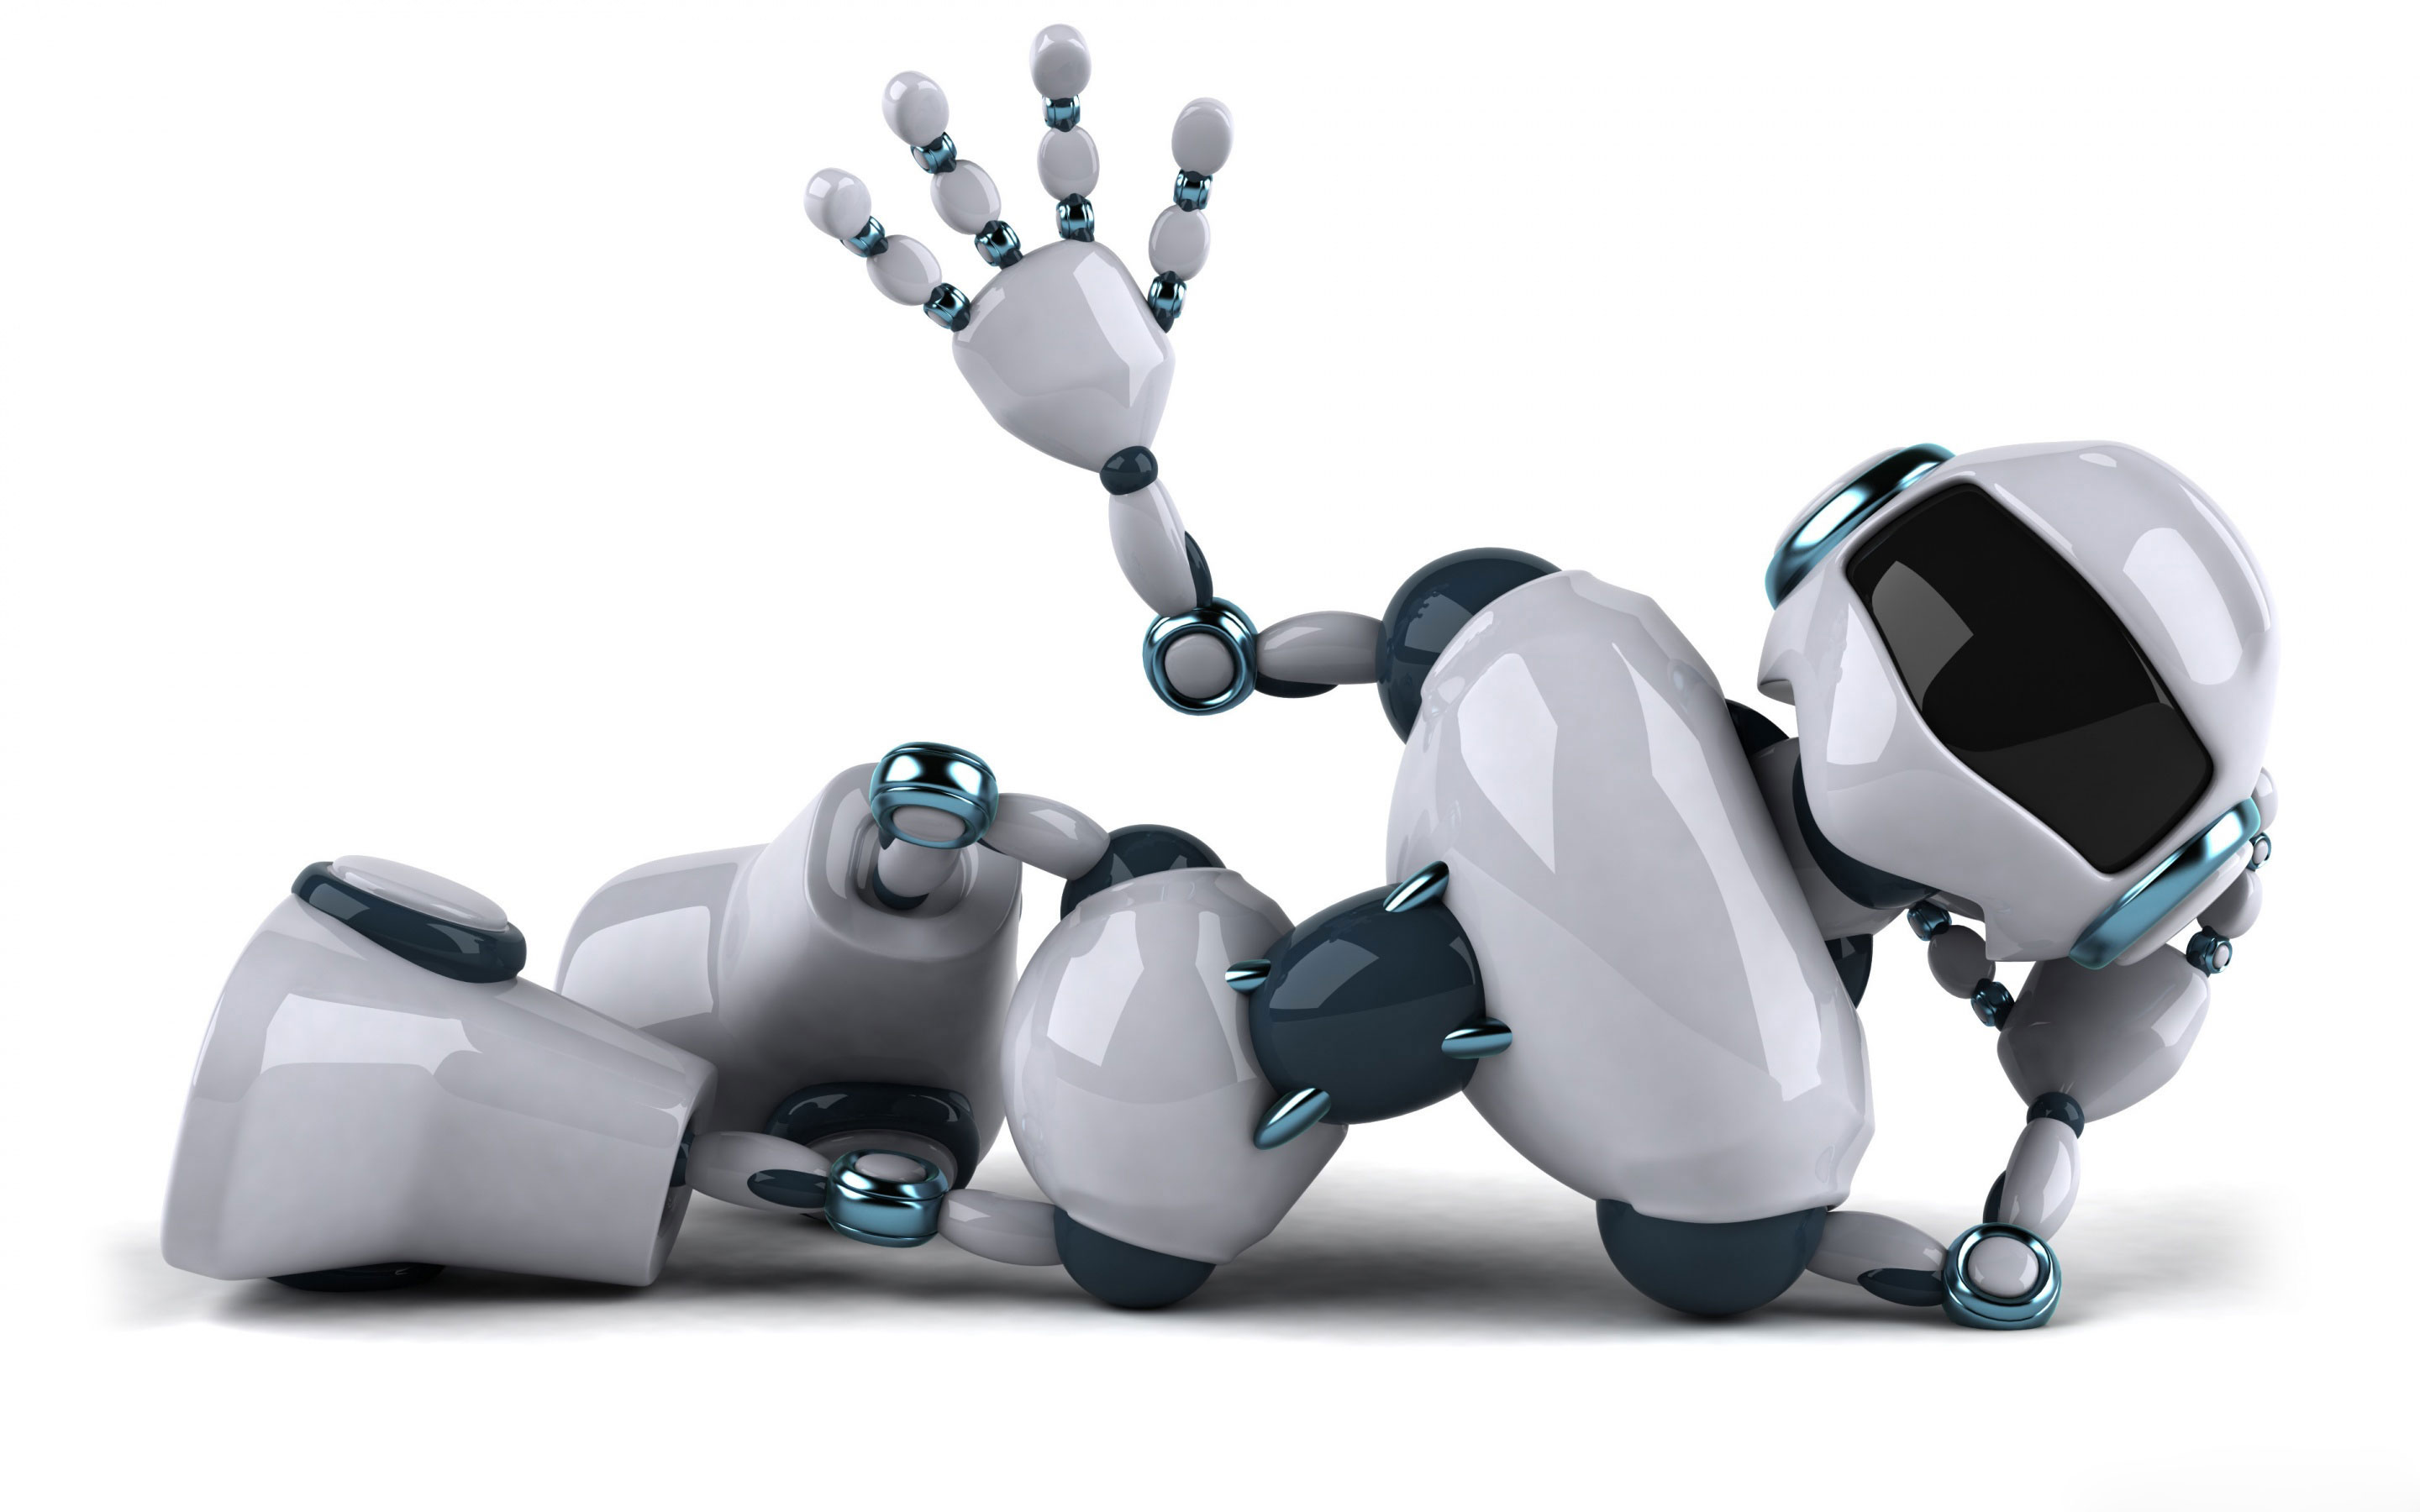 3d robot widescreen wallpaper 49974